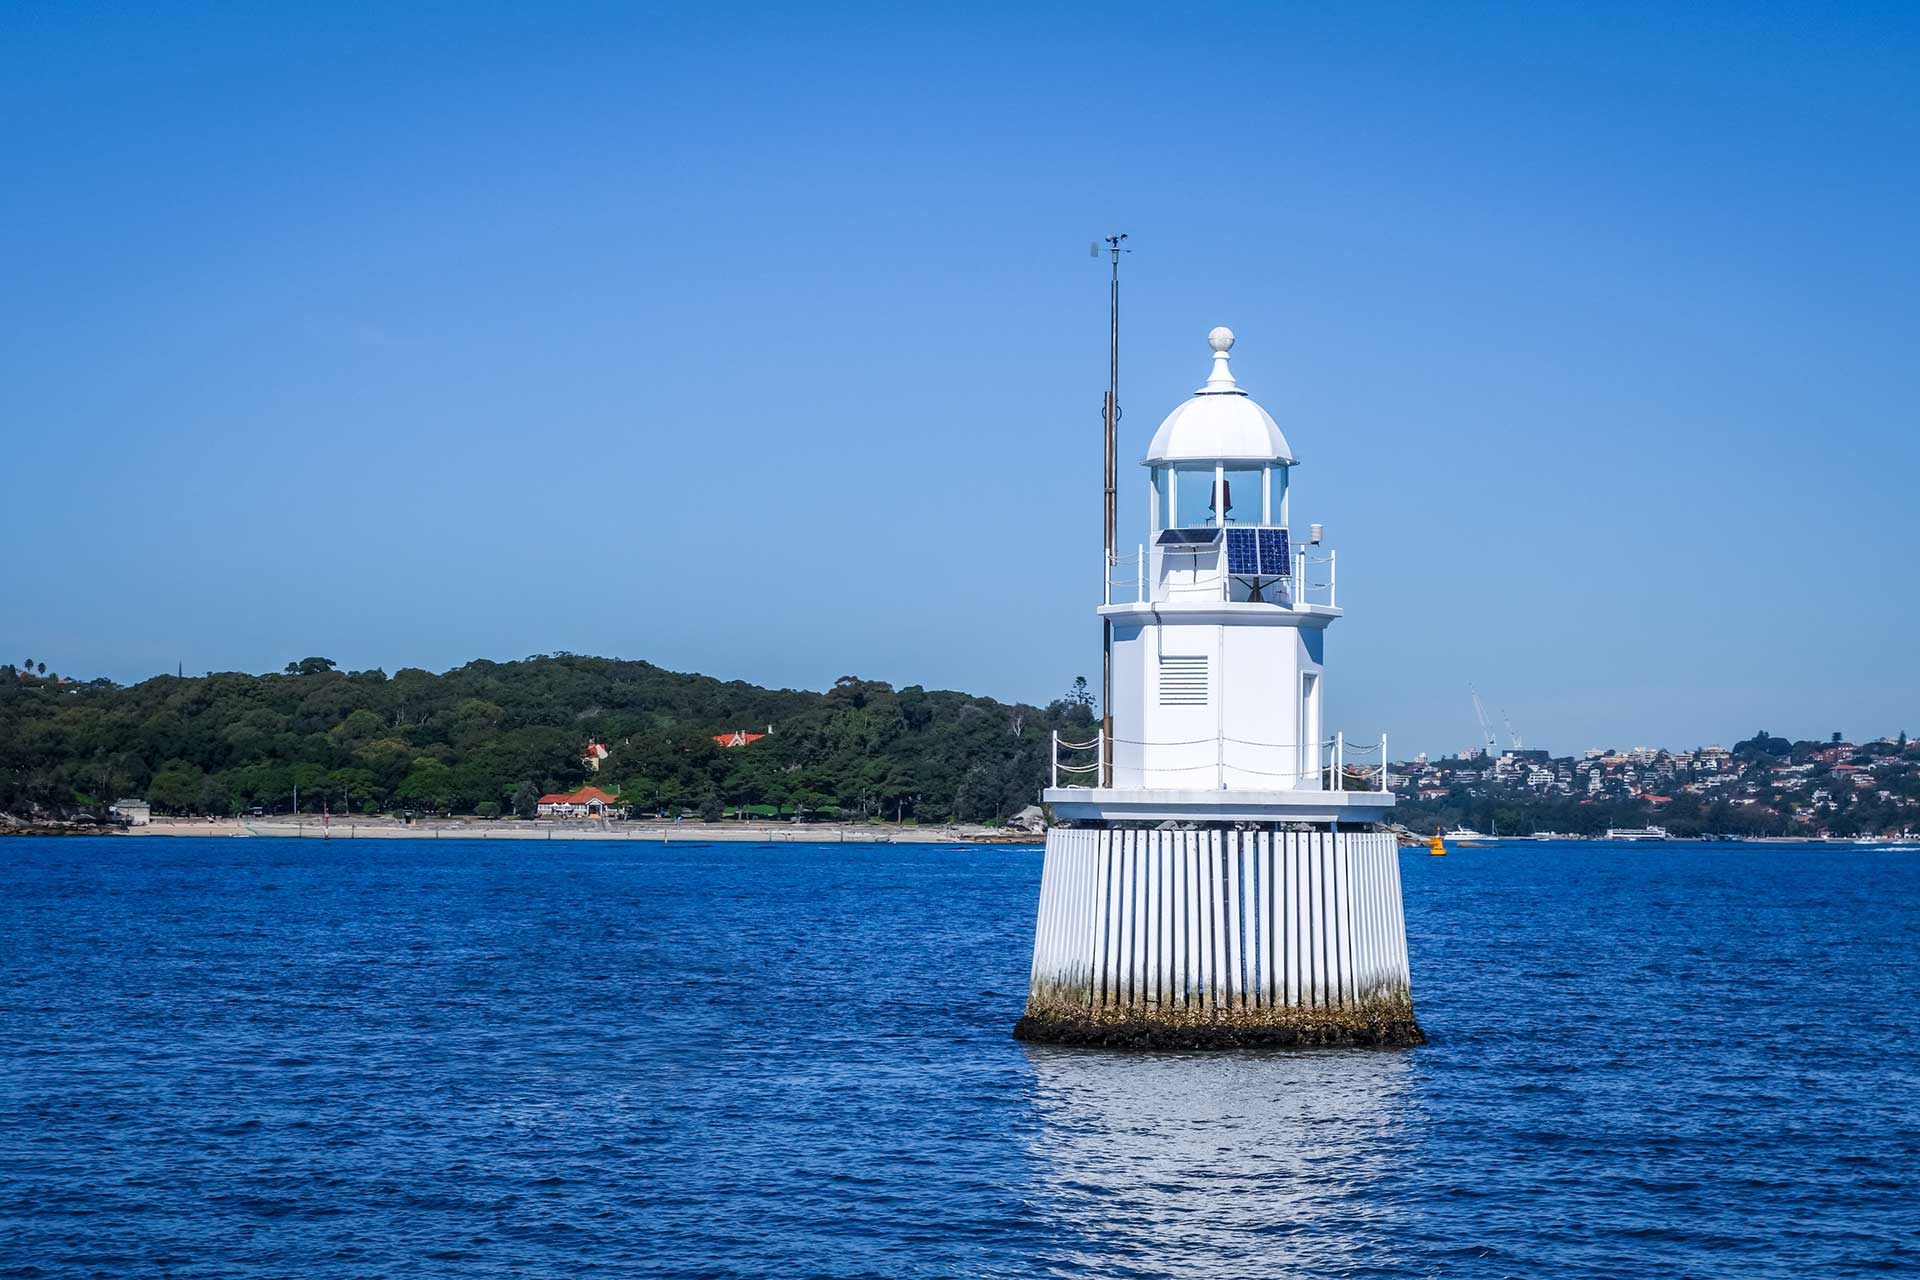 Fishing-and-diving-at-the-wedding-cakes-sydney